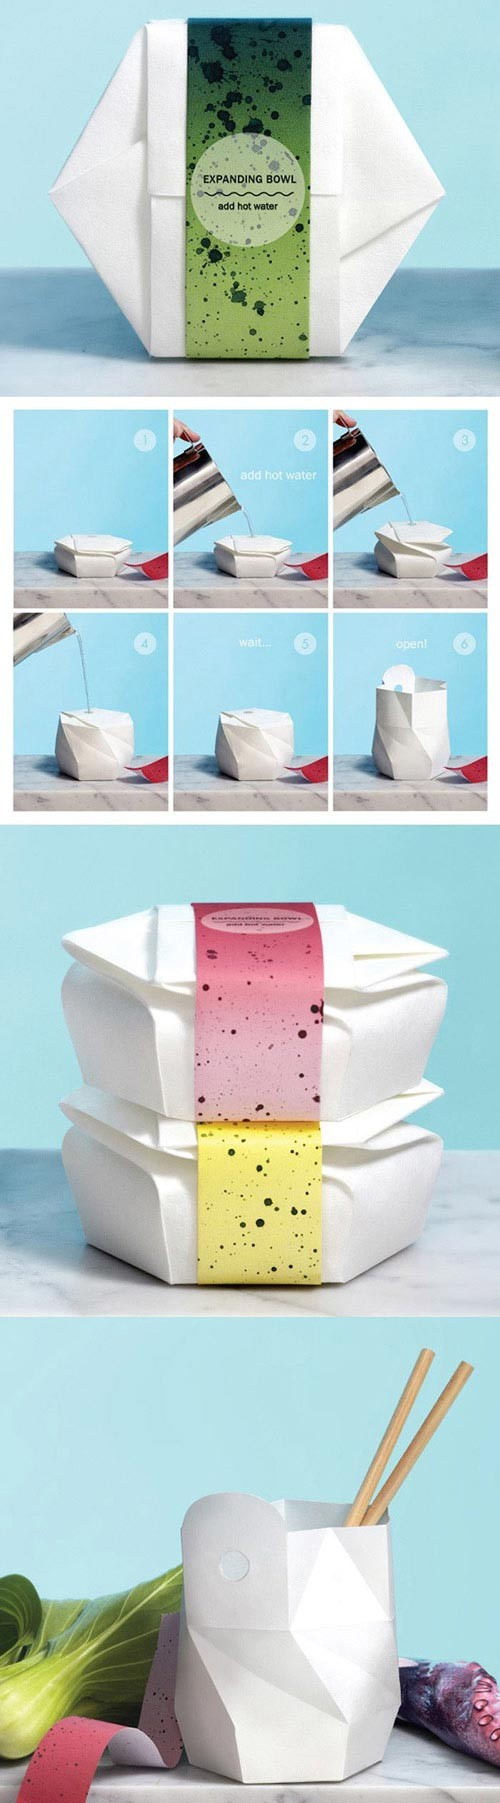 Ideas-para-packaging-sostenible